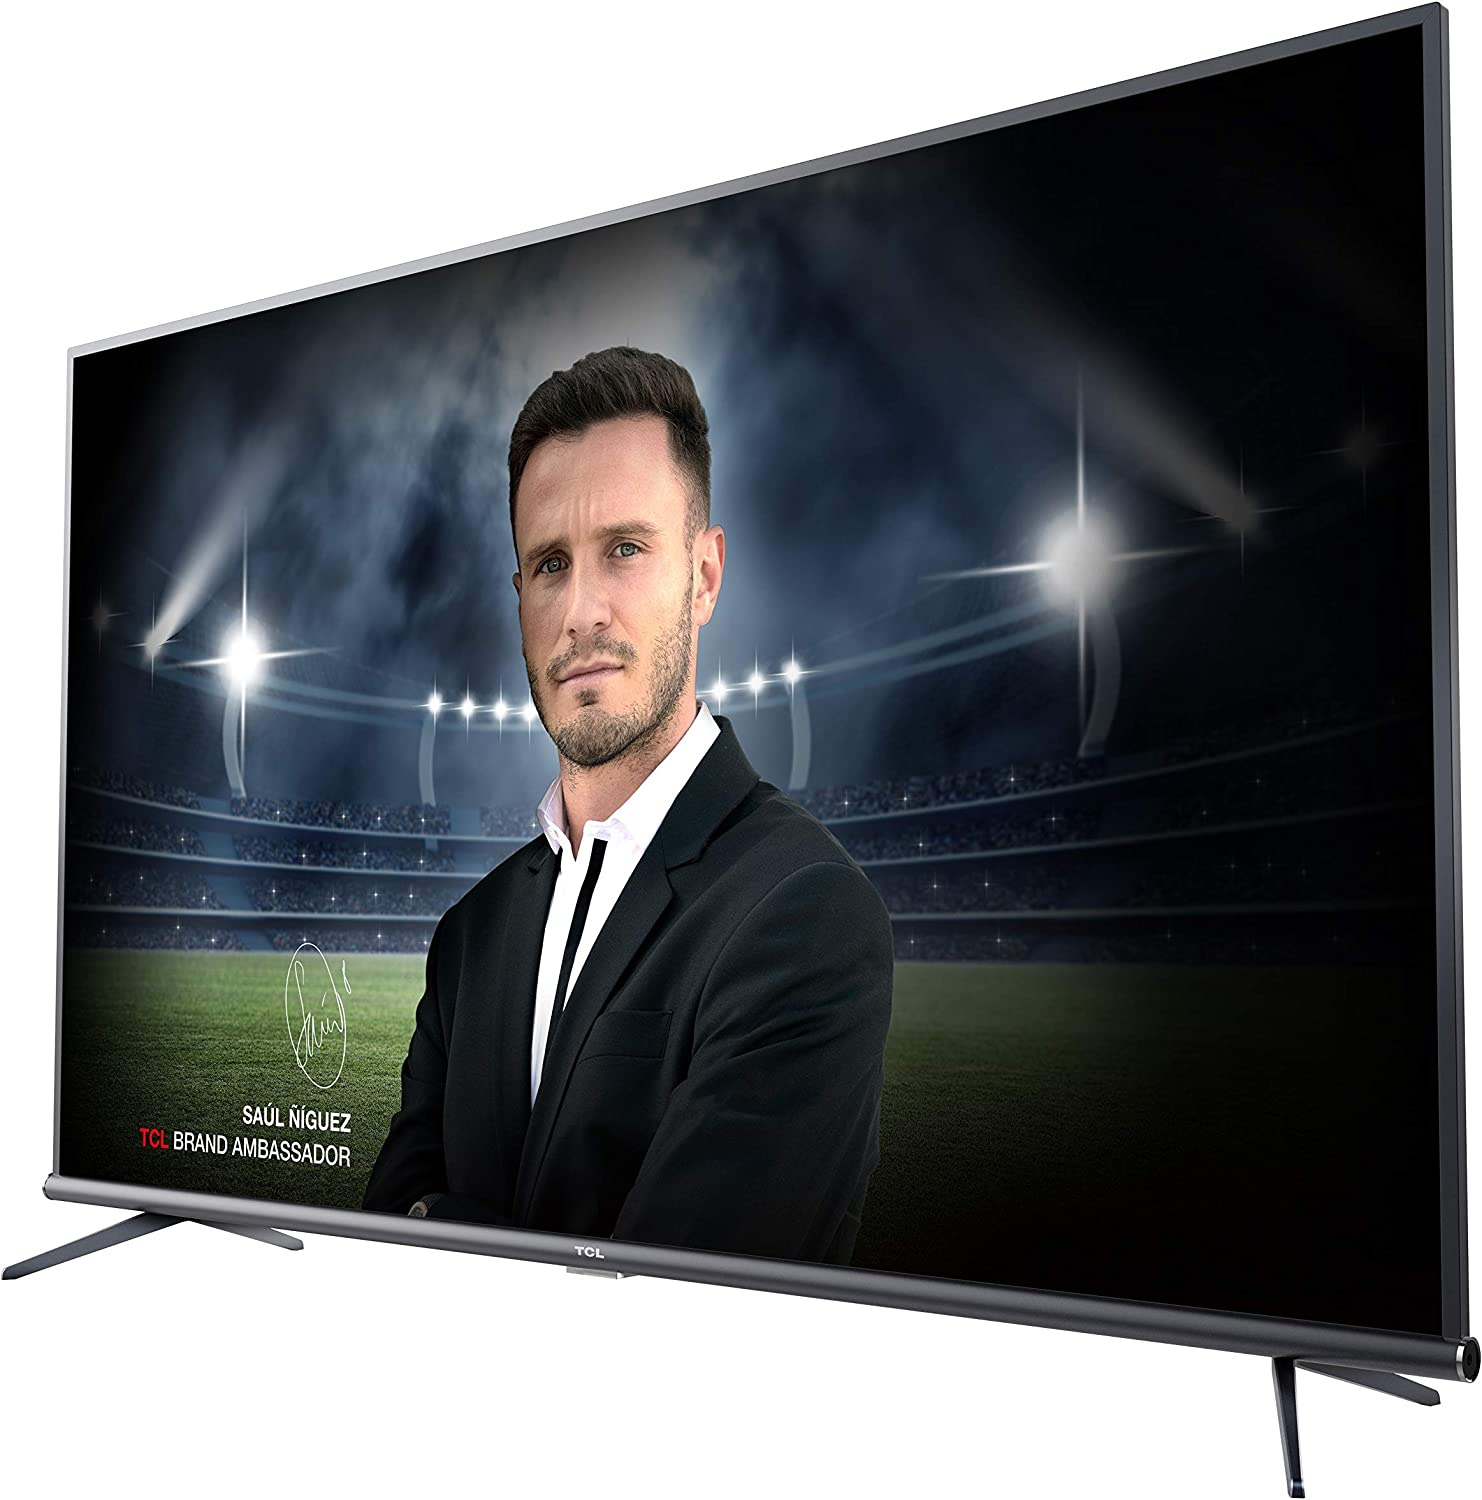 TCL 55DP660 Televisor 55 Pulgadas, Smart TV con Resolución 4K UHD, HDR10, Micro Dimming Pro, Android TV, Alexa, Google Assistant: Amazon.es: Electrónica